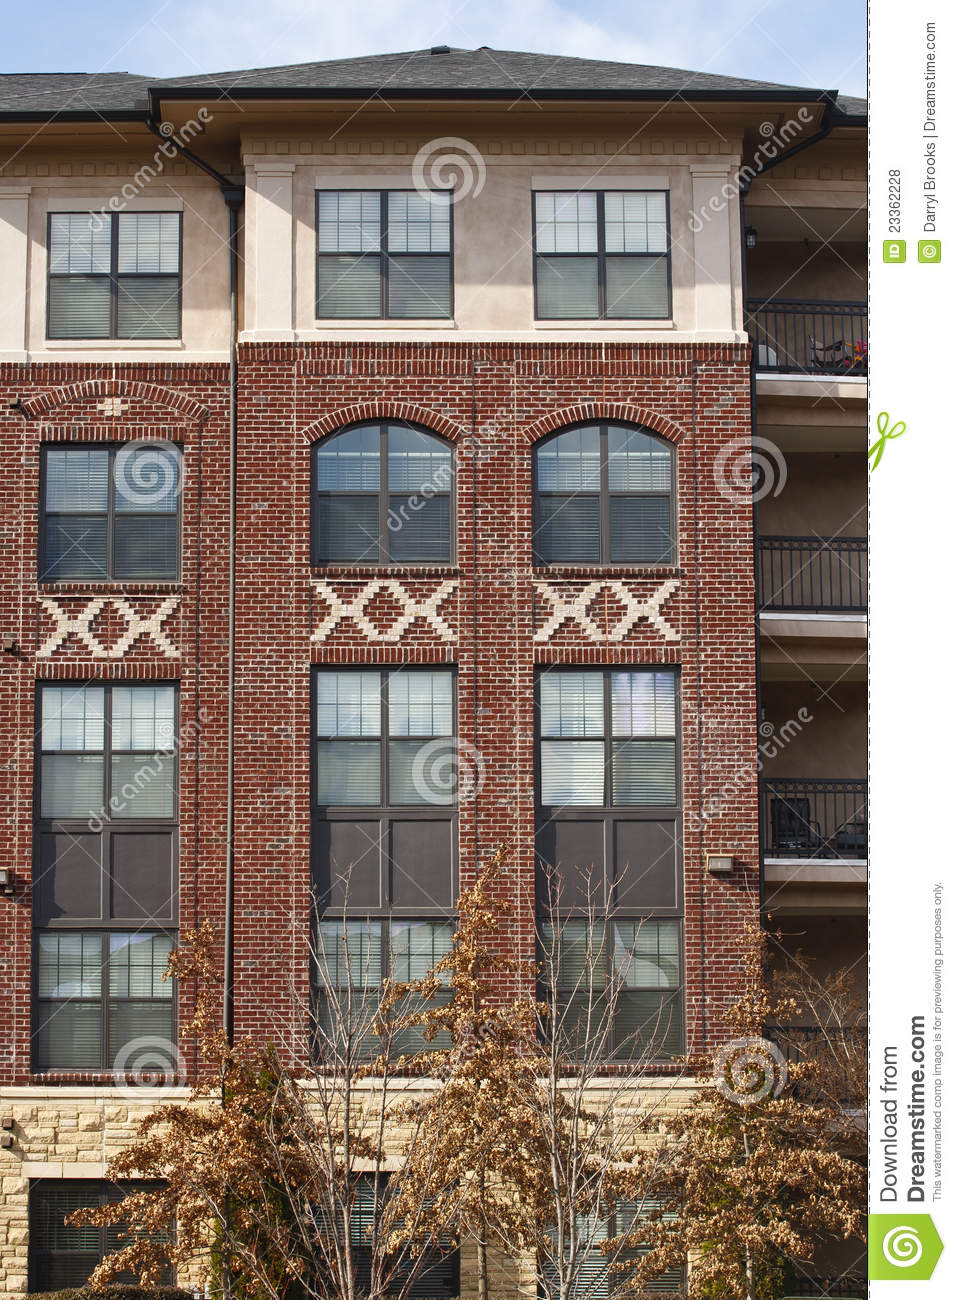 New Brick Apartment Building Royalty Free Stock Photos Image 23362228